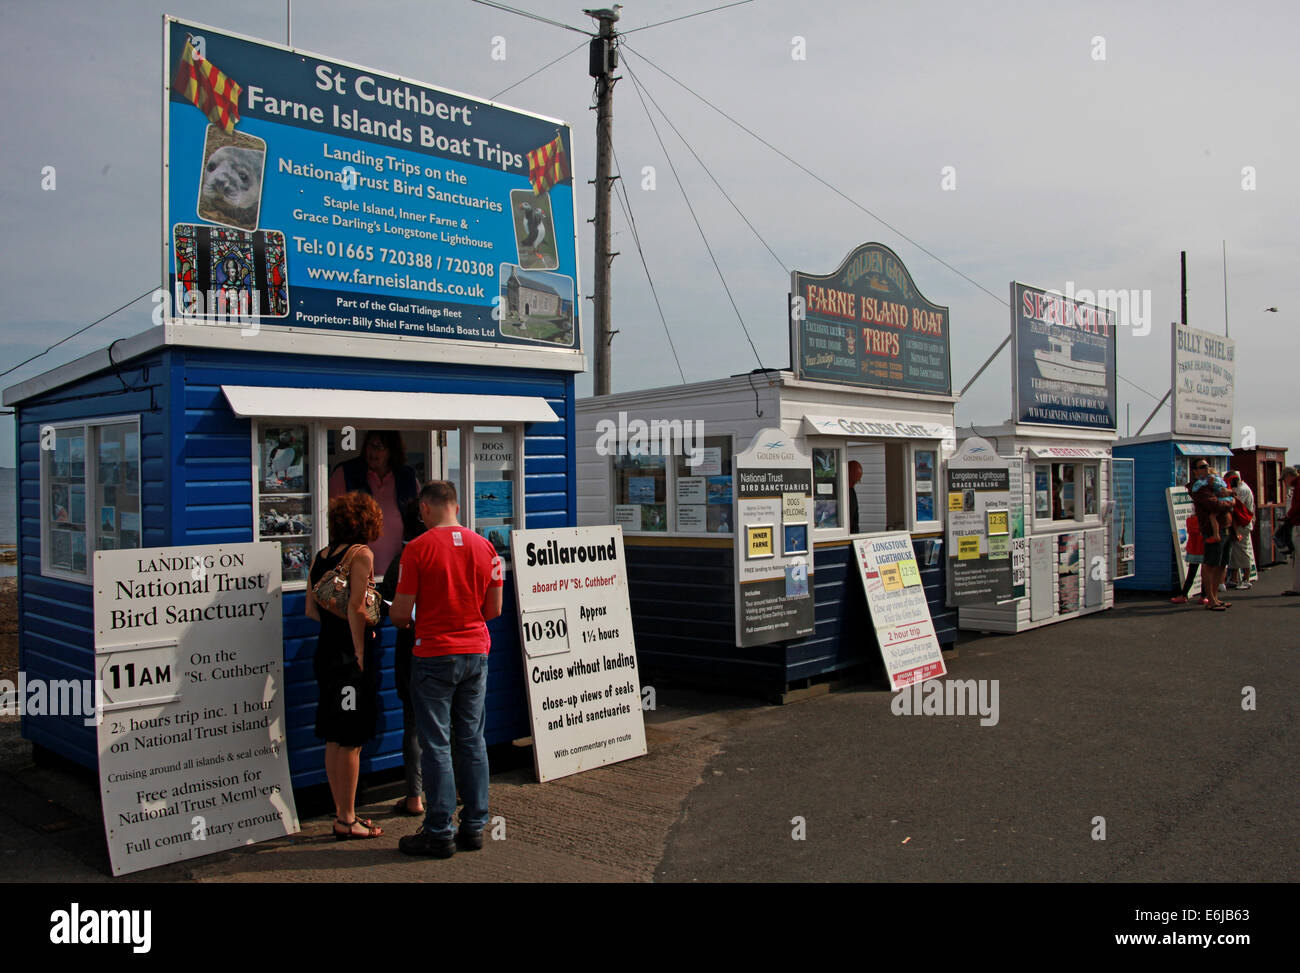 St Cuthbert Boat Tickets Being Sold From Sheds At